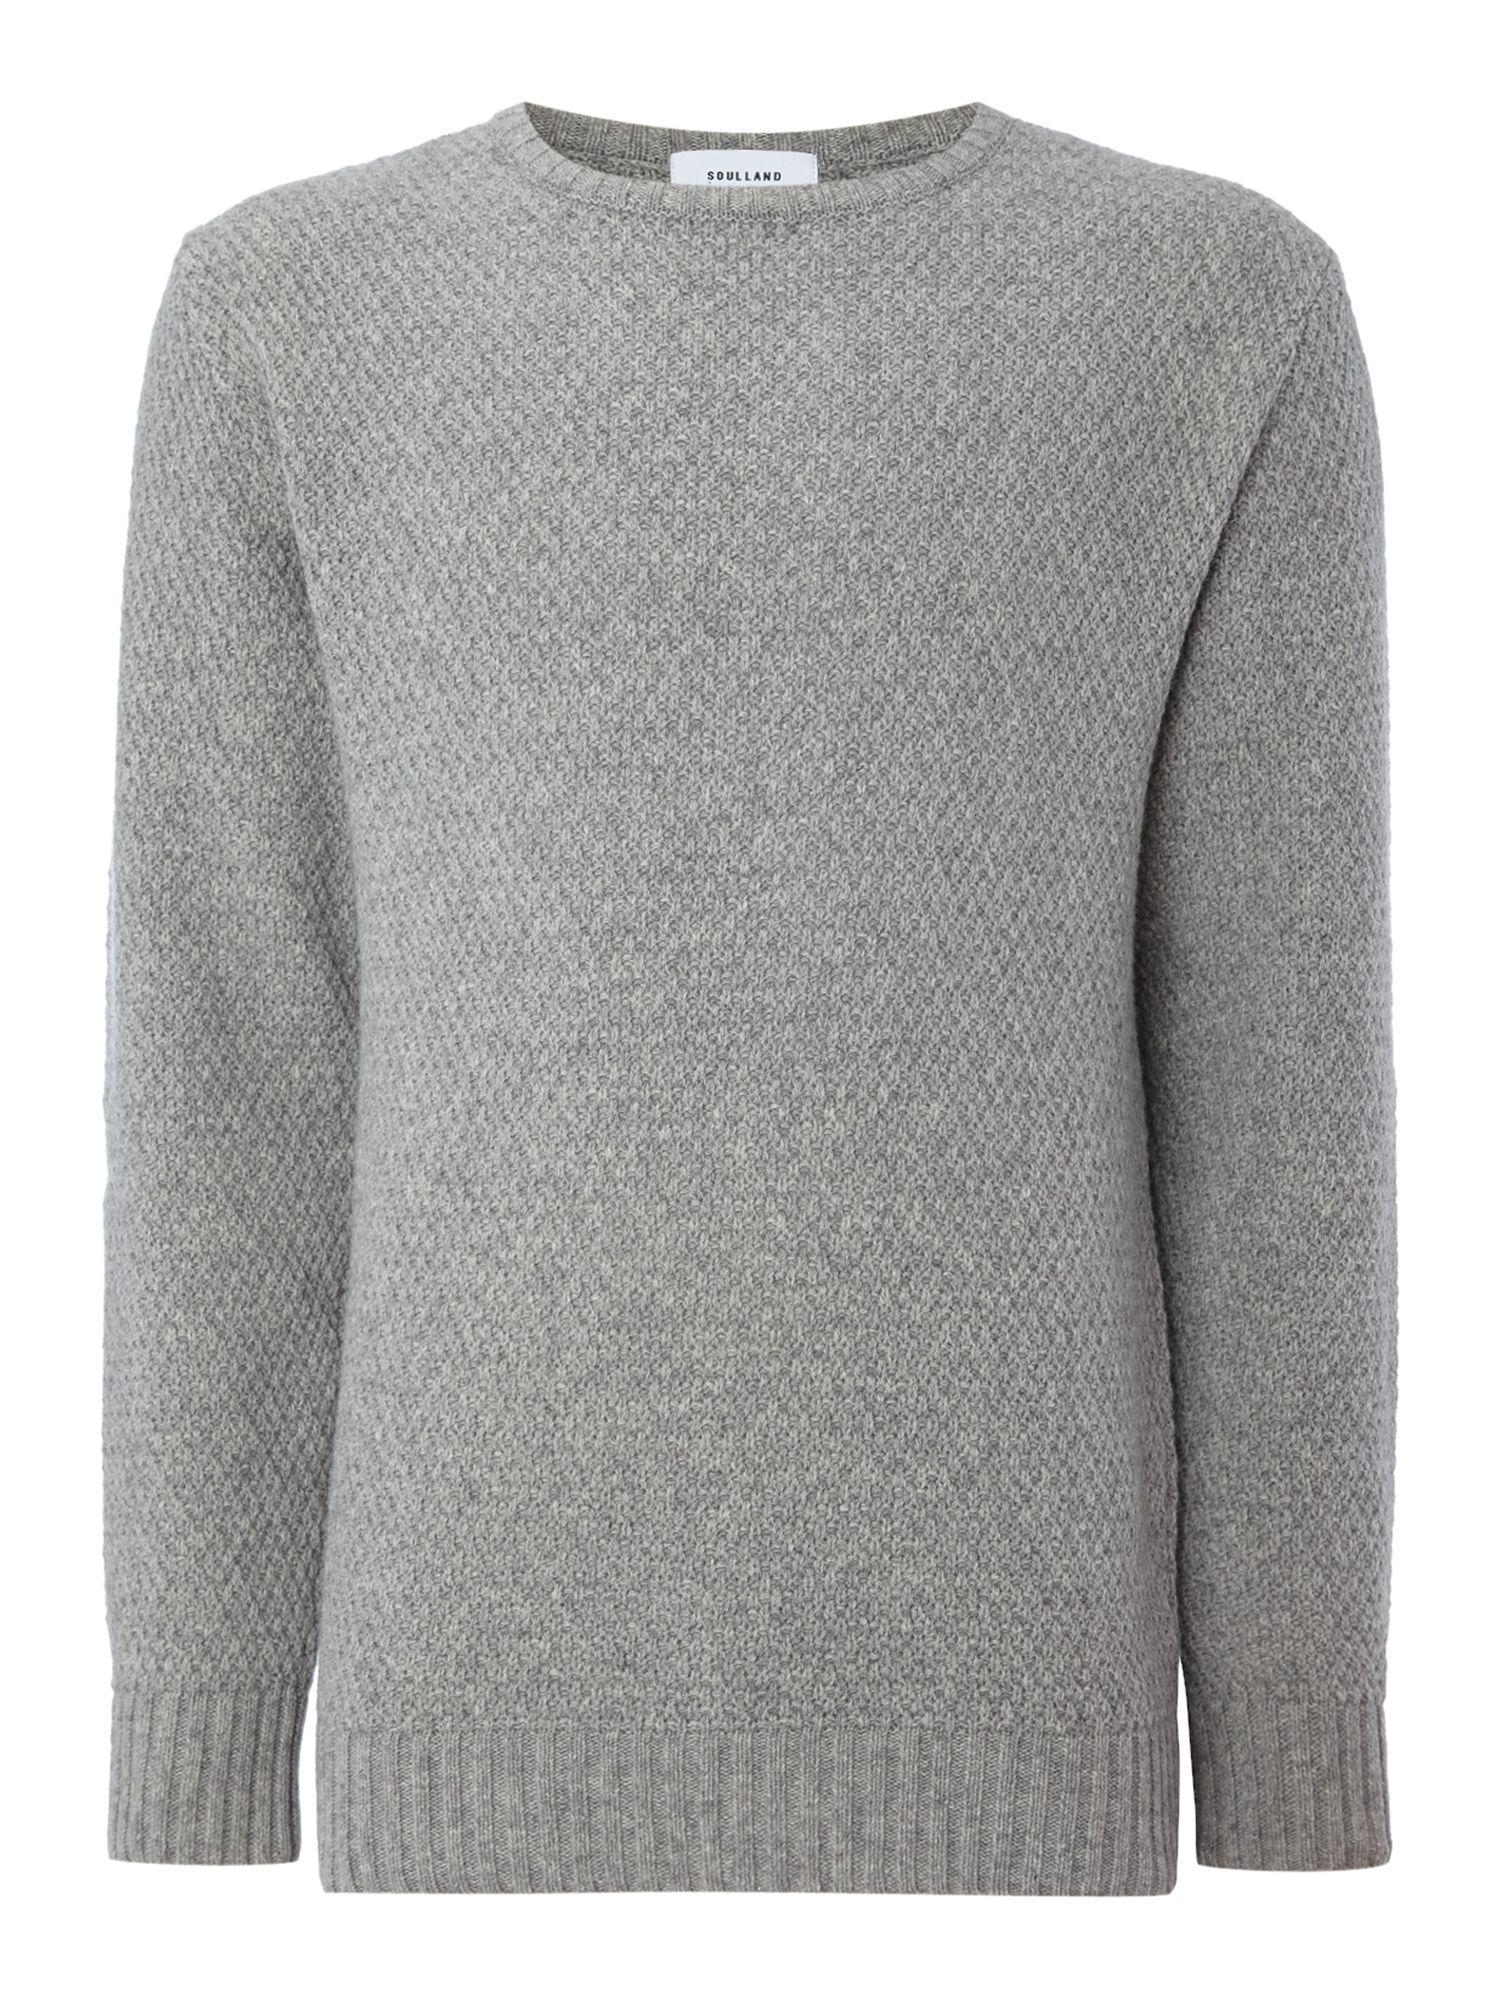 Soulland Men's Soulland Ricketts textured knitted crew neck jumper, Grey Marl